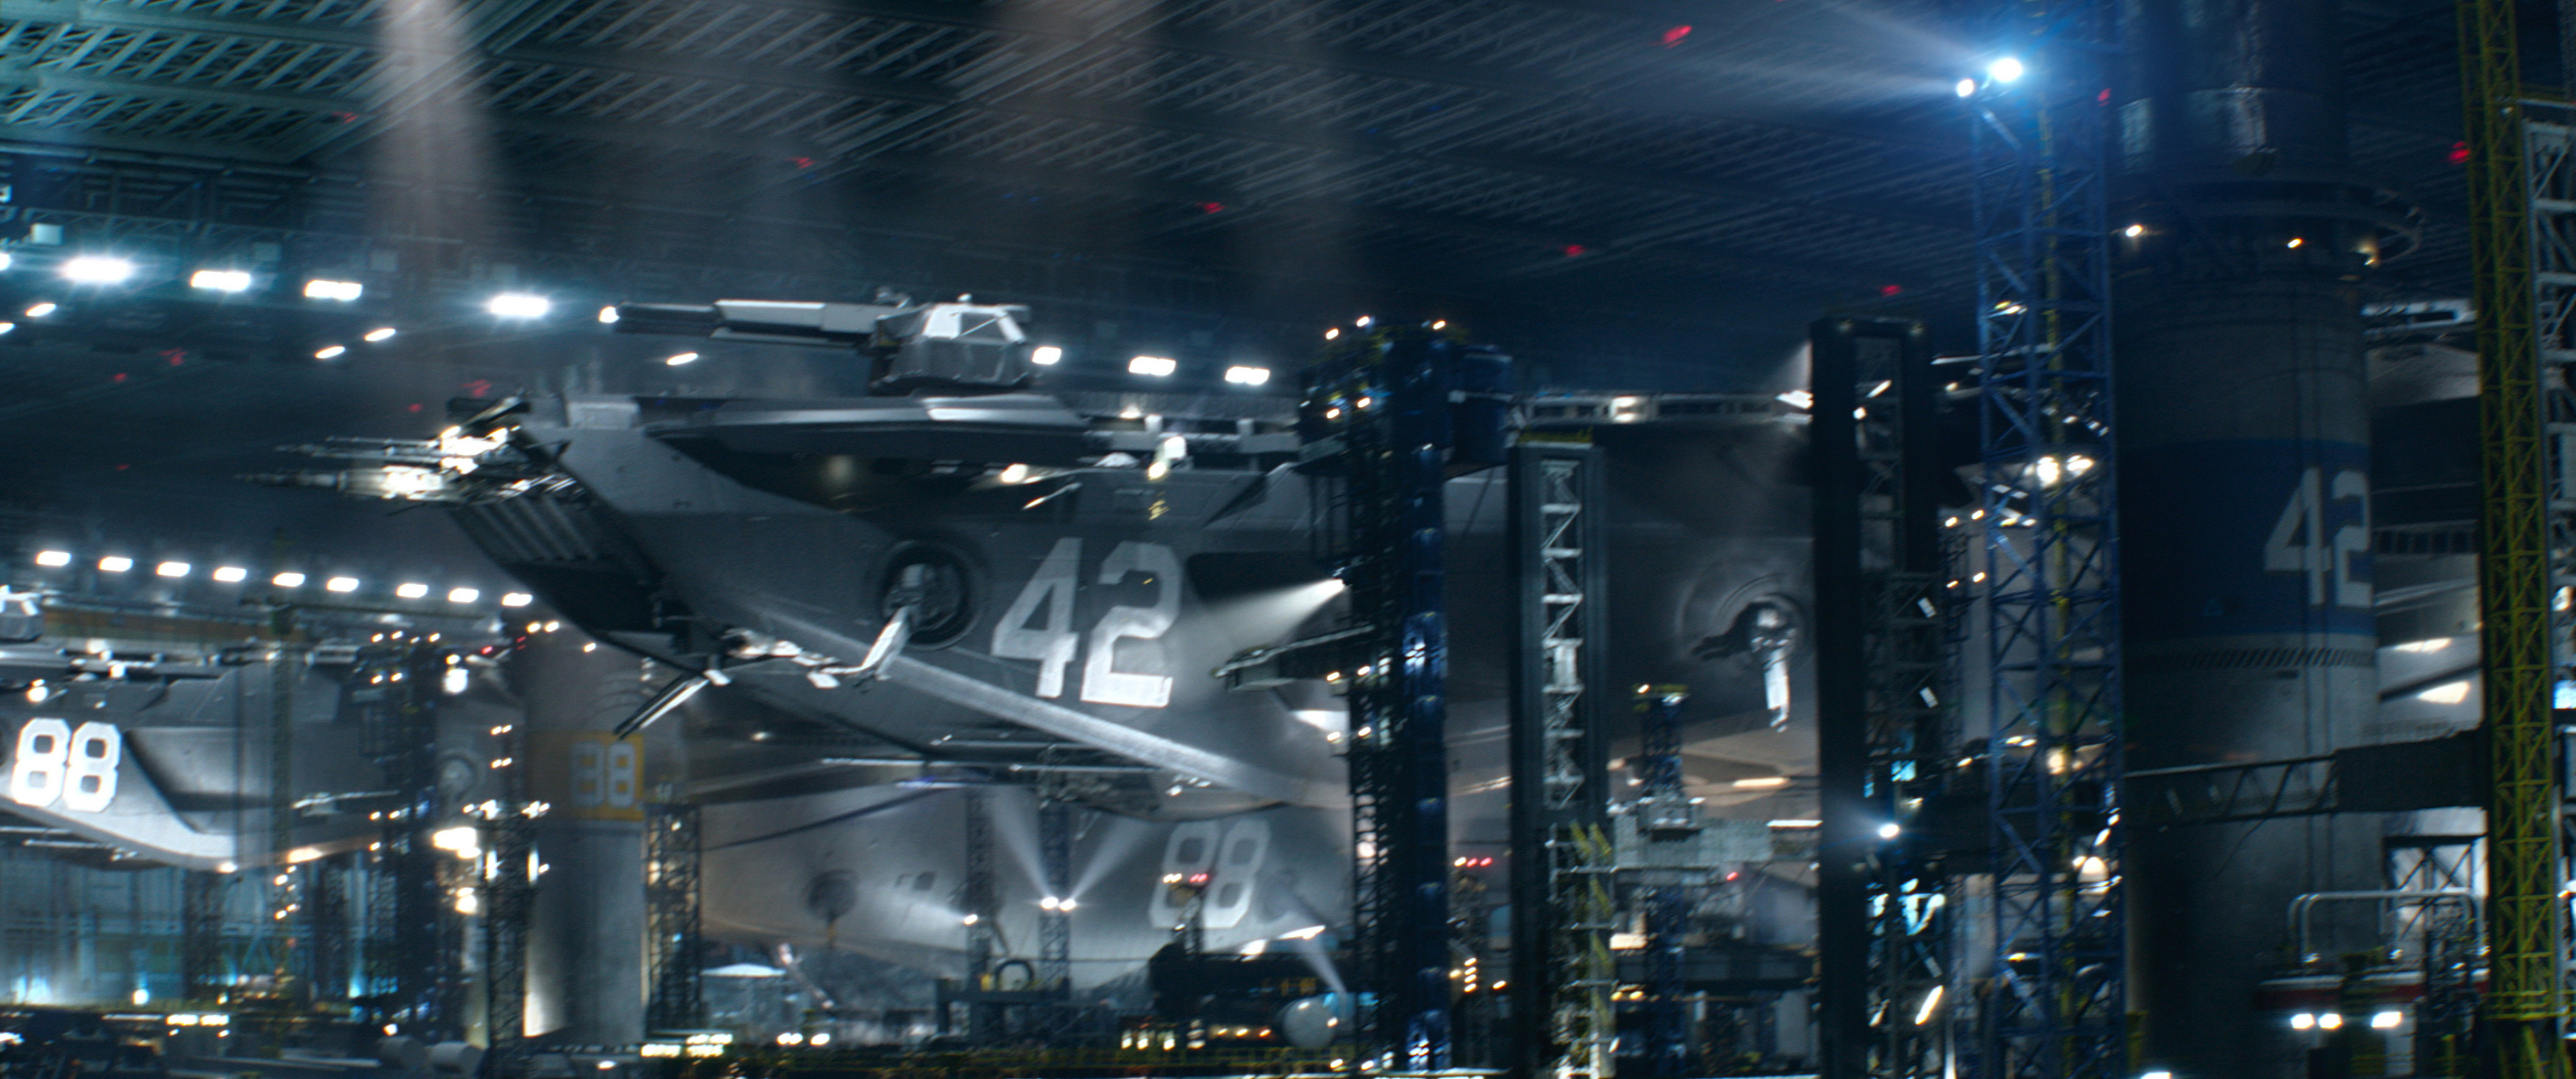 Shield Helicarrier Wallpaper do The Helicarriers Prevail